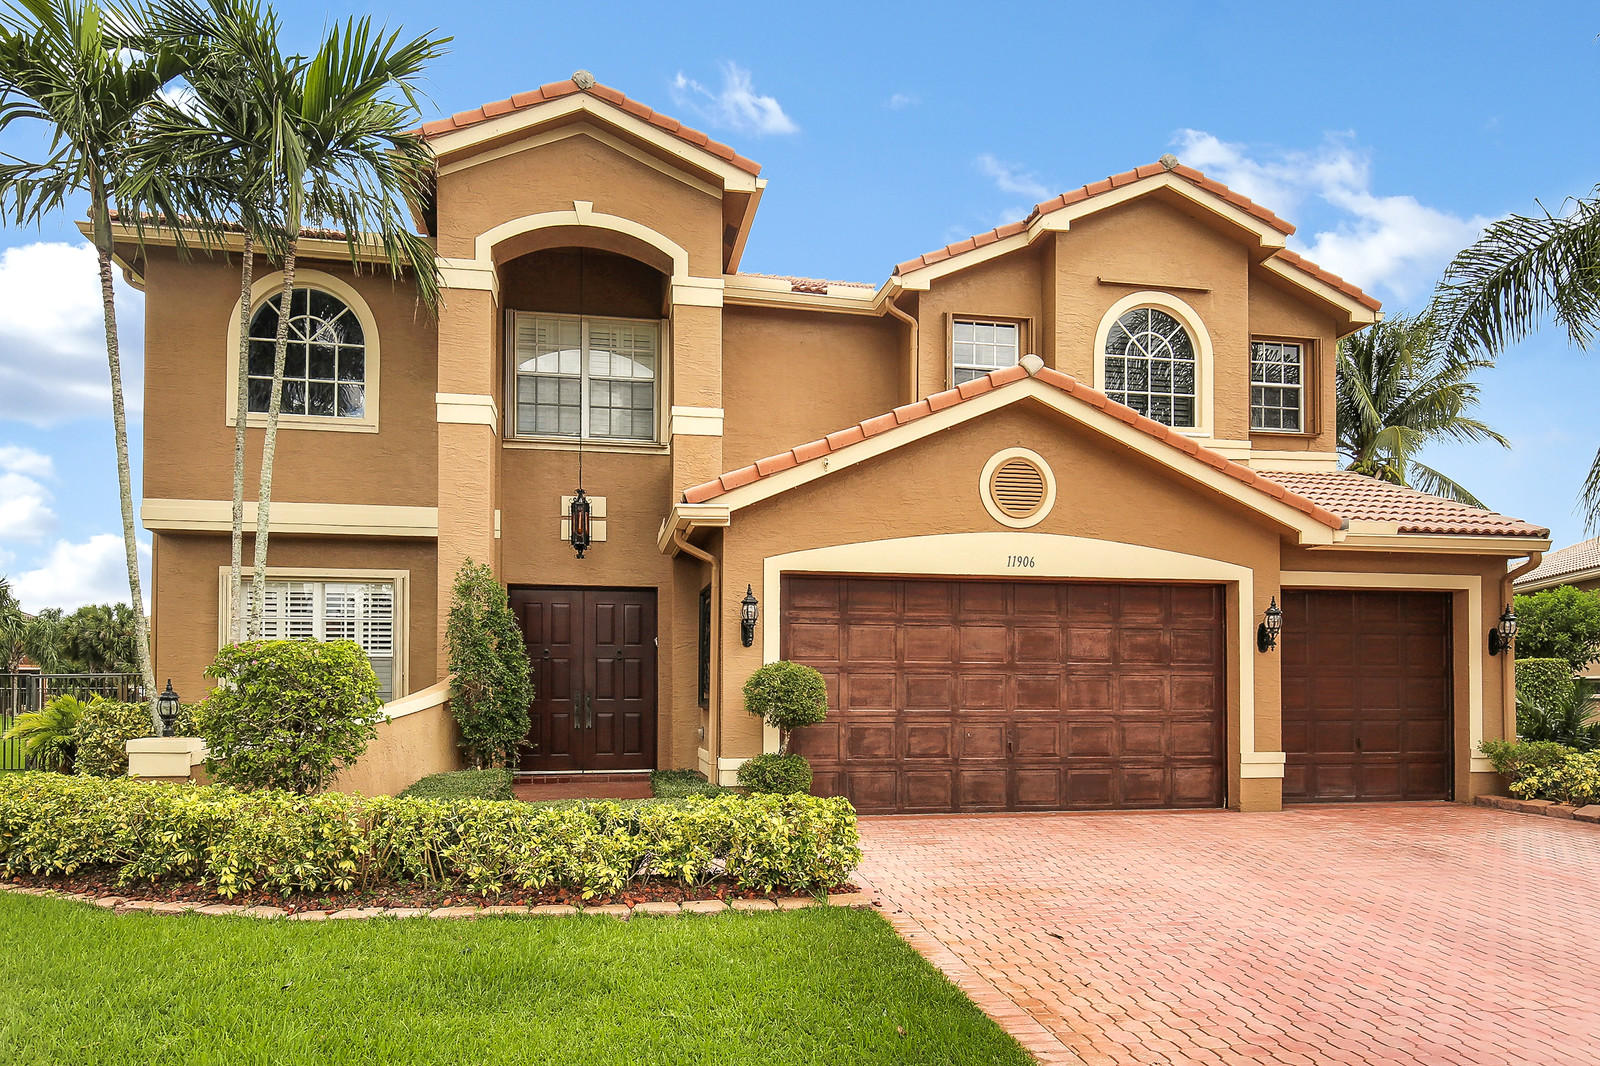 Photo of 11906 Preservation Lane, Boca Raton, FL 33498